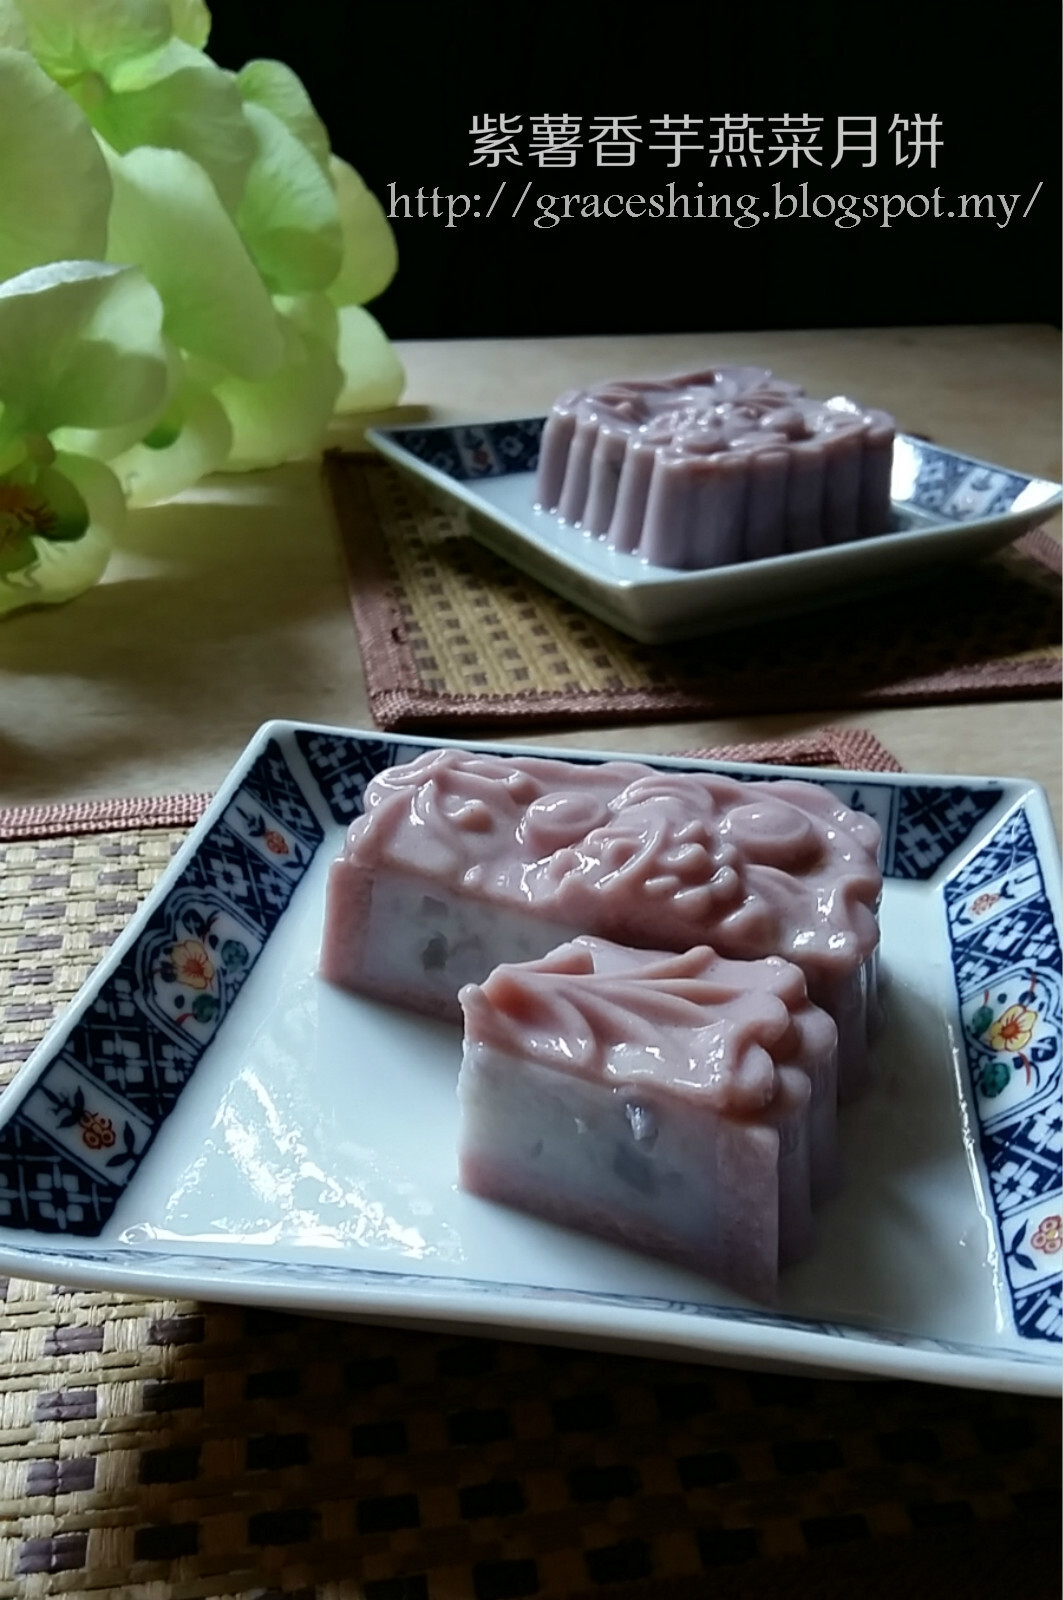 紫薯香芋燕菜月饼 Sweet Potato & Yam Jelly Mooncake